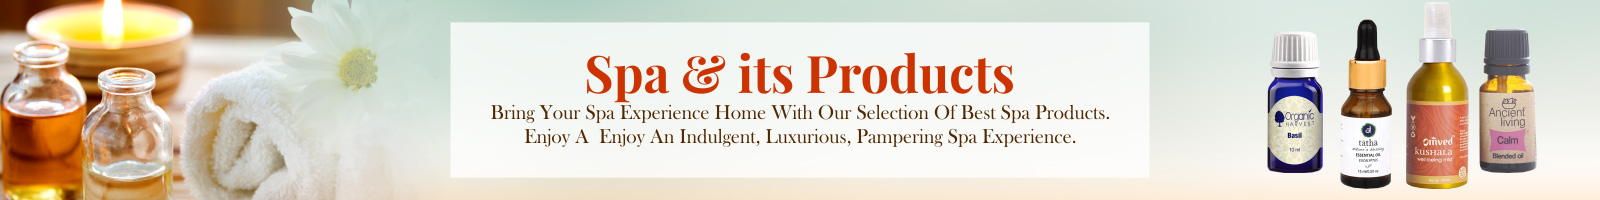 Spa & its Products